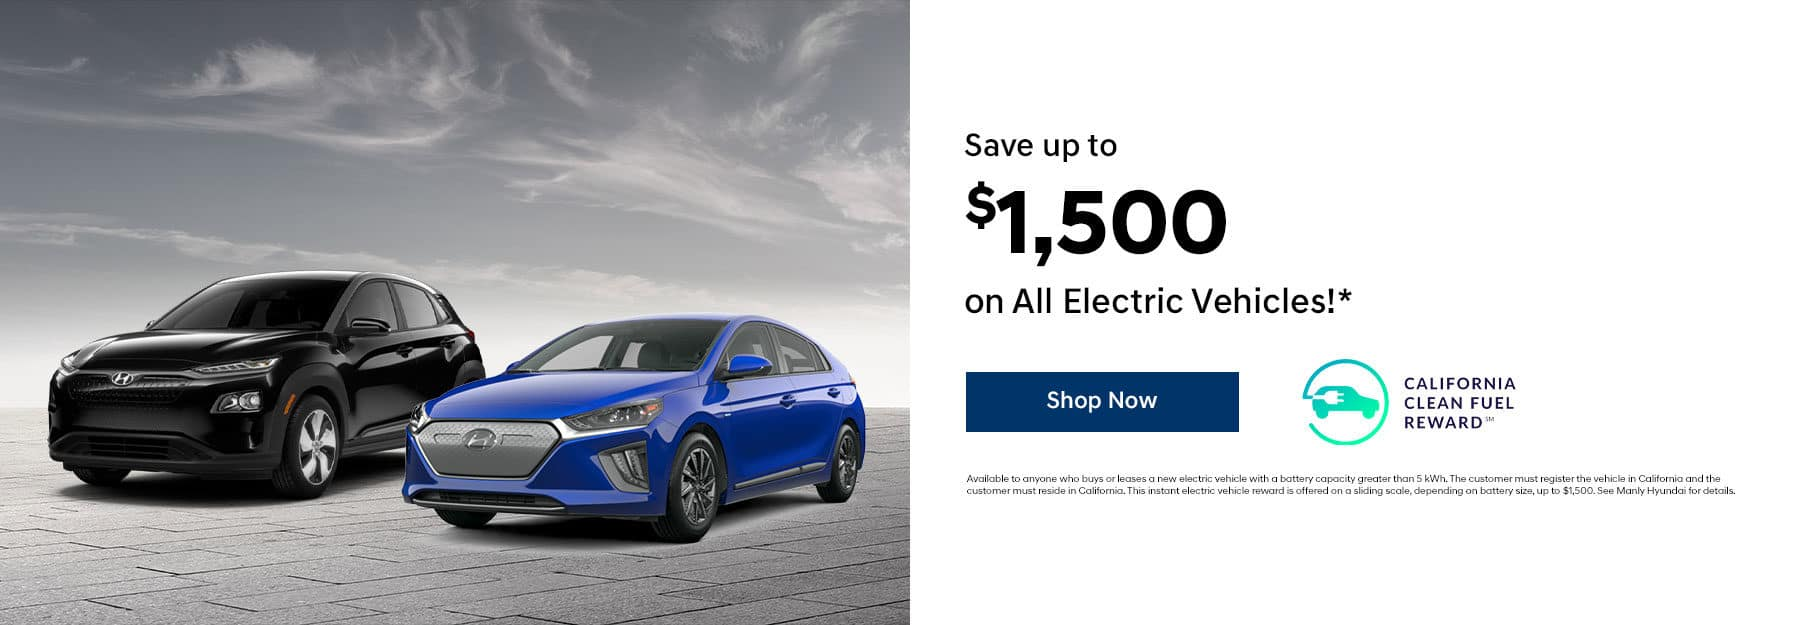 Save up to $1,500 on All Electric Vehicles!* N/A